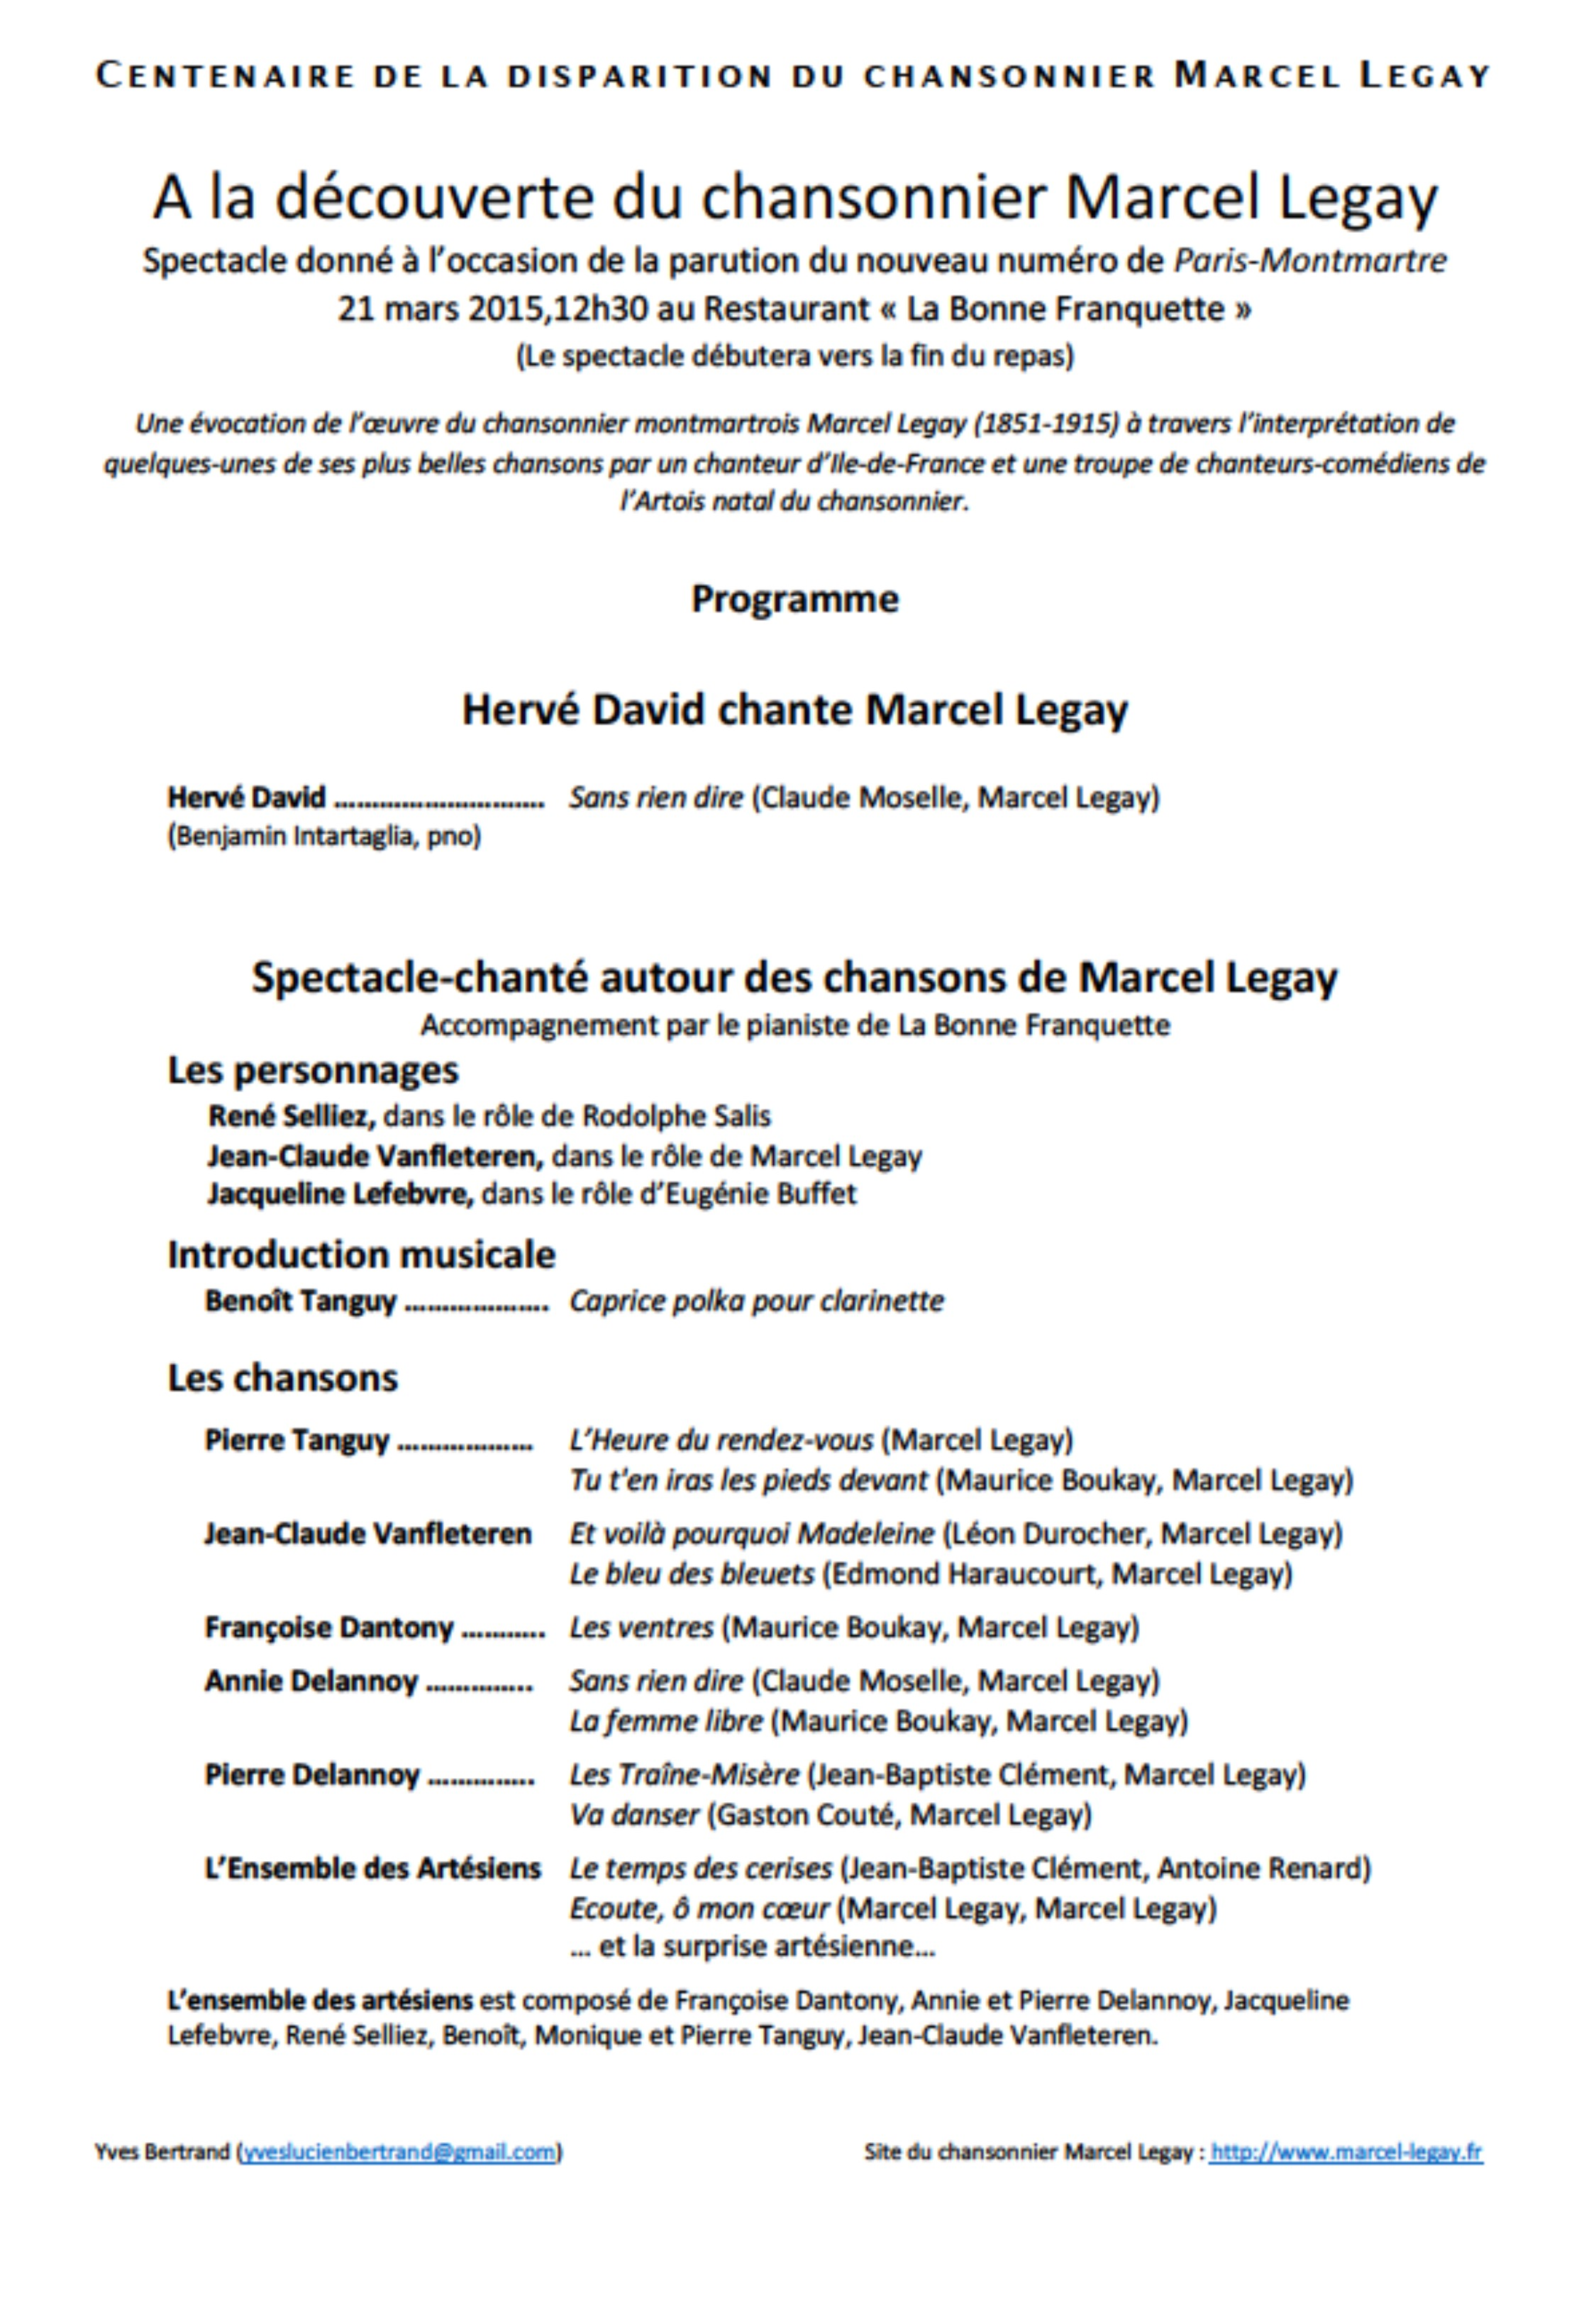 2015-03-21_Programme_Spectacle_La Bonne Franquette_Paris